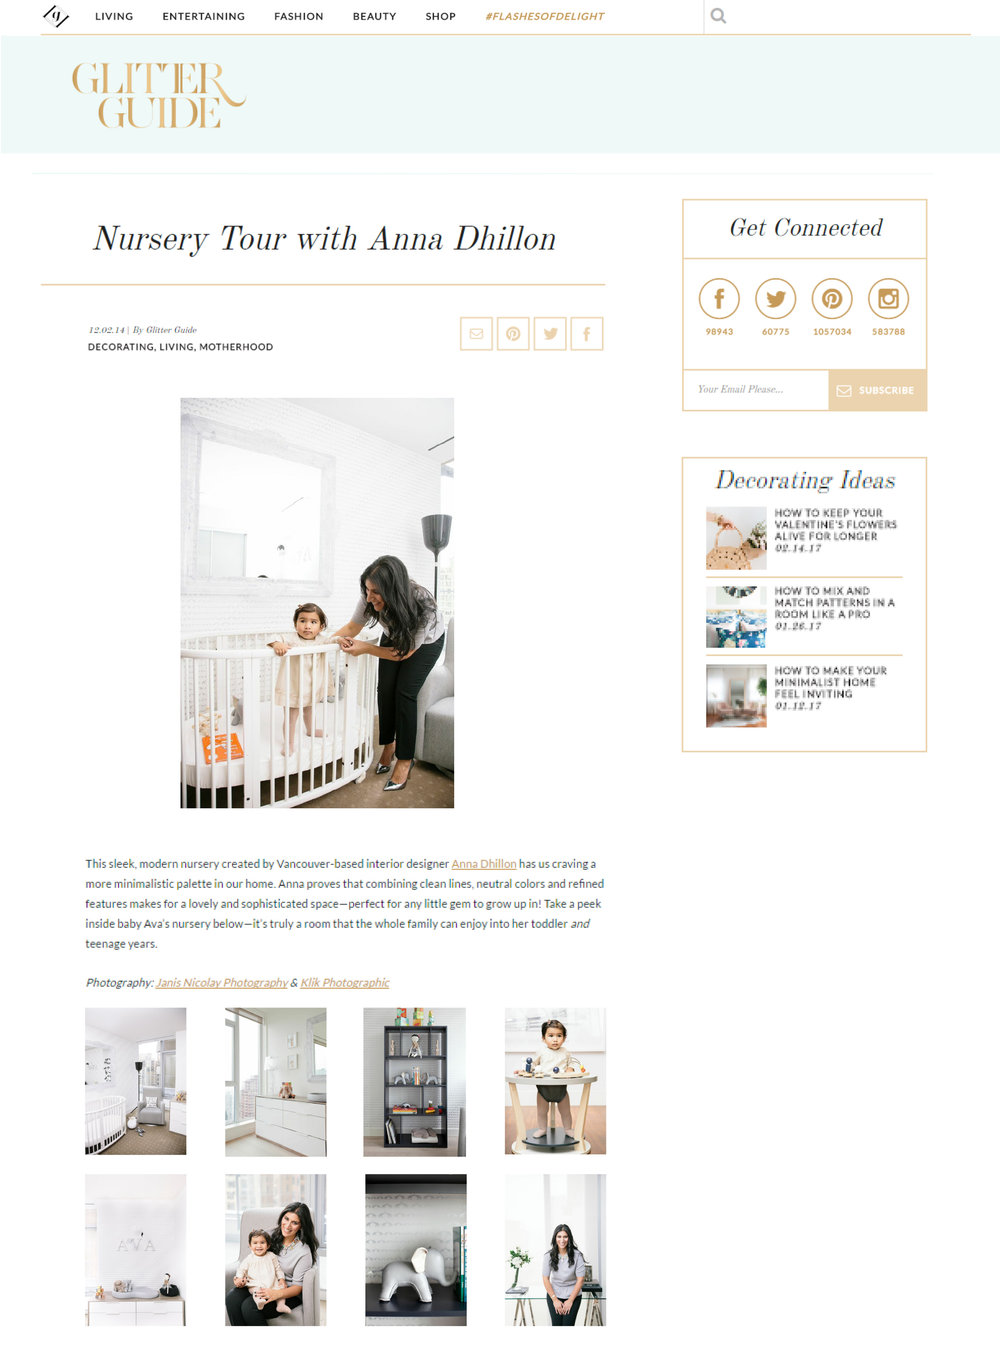 14_12-Glitter_Guide-Nursery_Tour_With_Anna_Dhillon.jpg